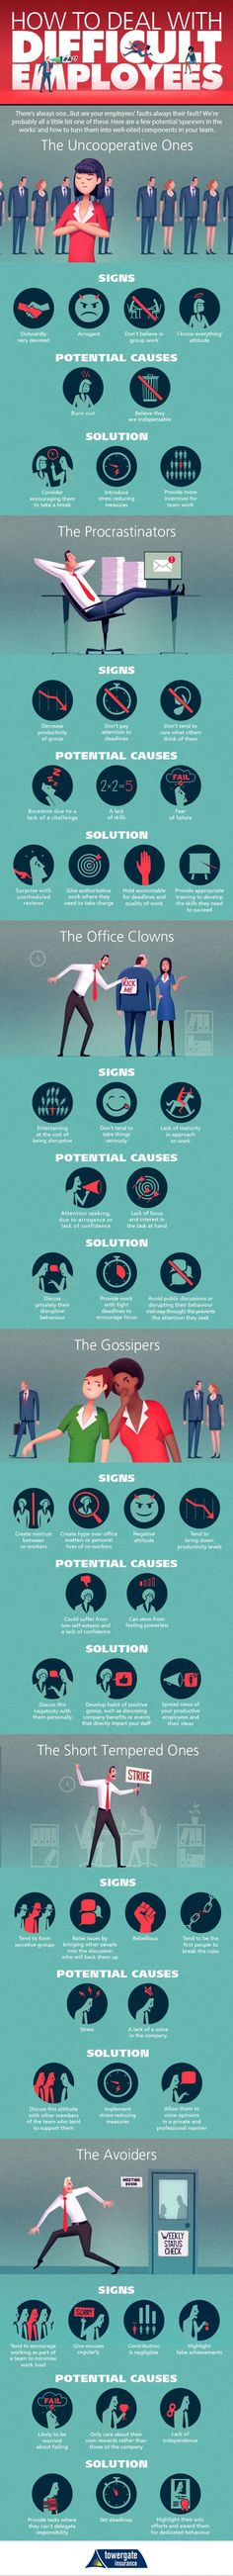 Business and management infographic & data visualisation How To Deal With Difficult Employees - Infographic Description How To Deal With Leadership Development, Professional Development, Leadership Strategies, Leadership Activities, Personal Development, Business Management, Management Tips, Amélioration Continue, Coaching